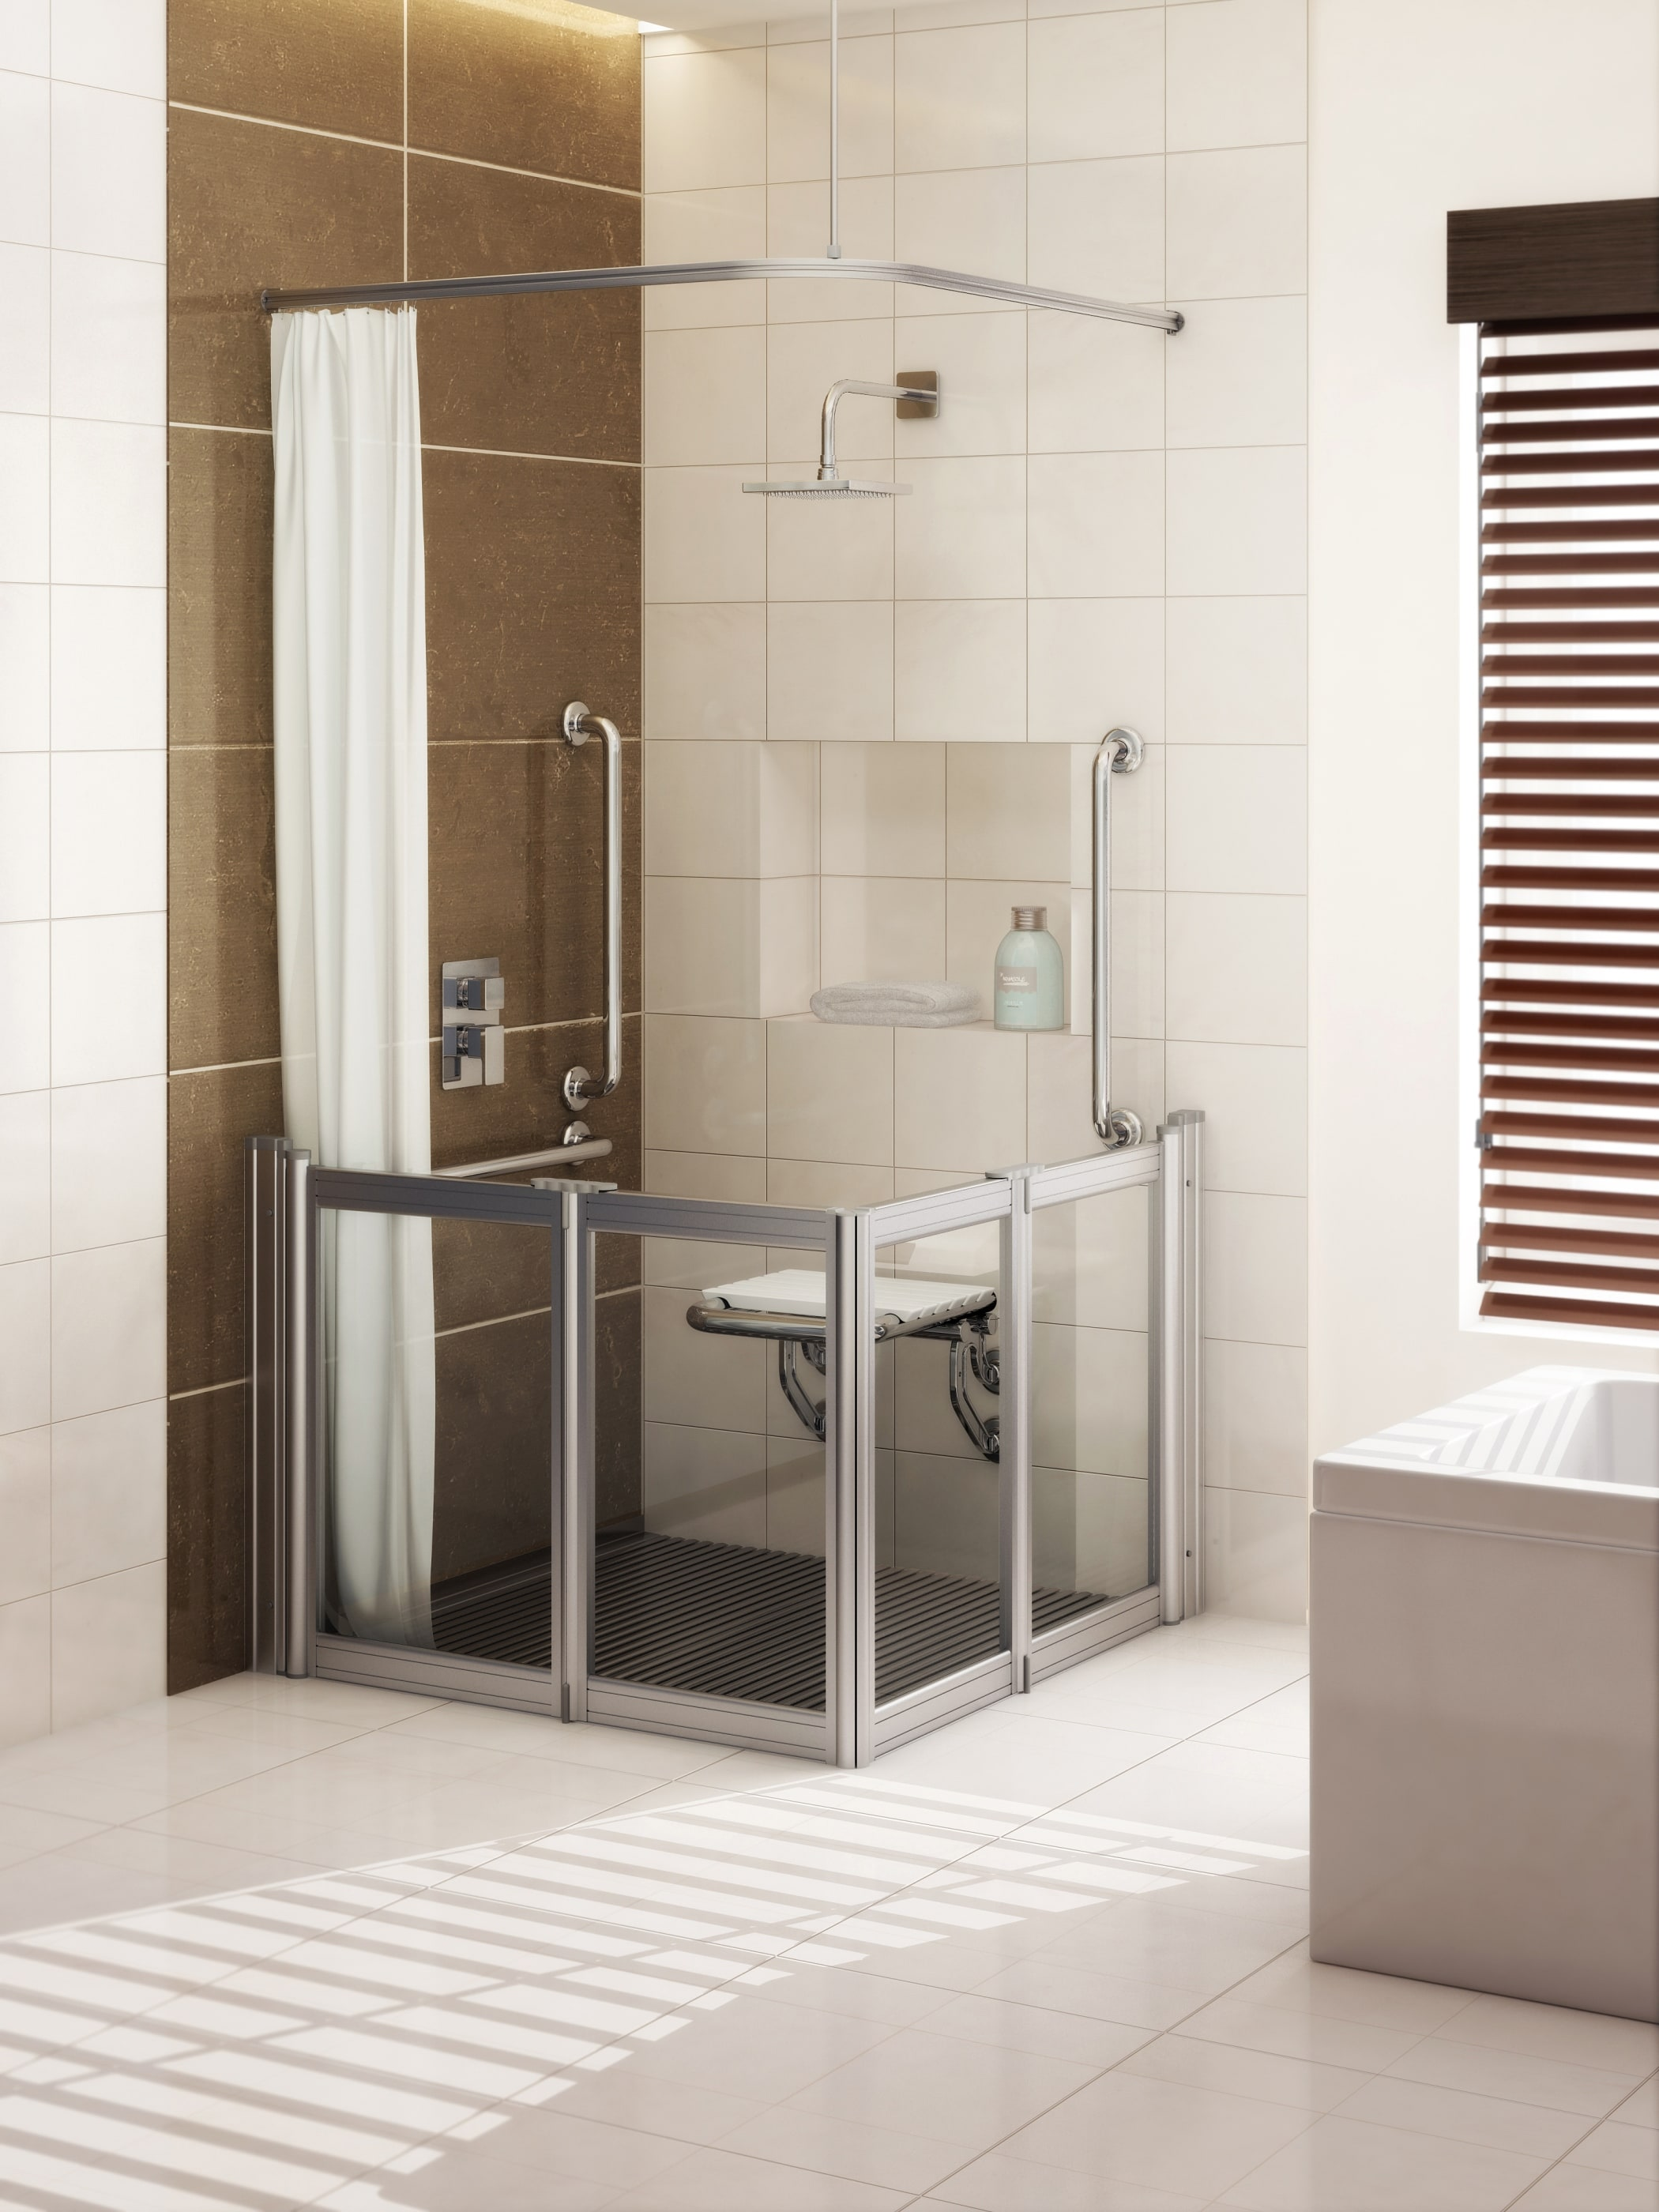 Chrome-effect is new metallic finish for grab rails and shower seats